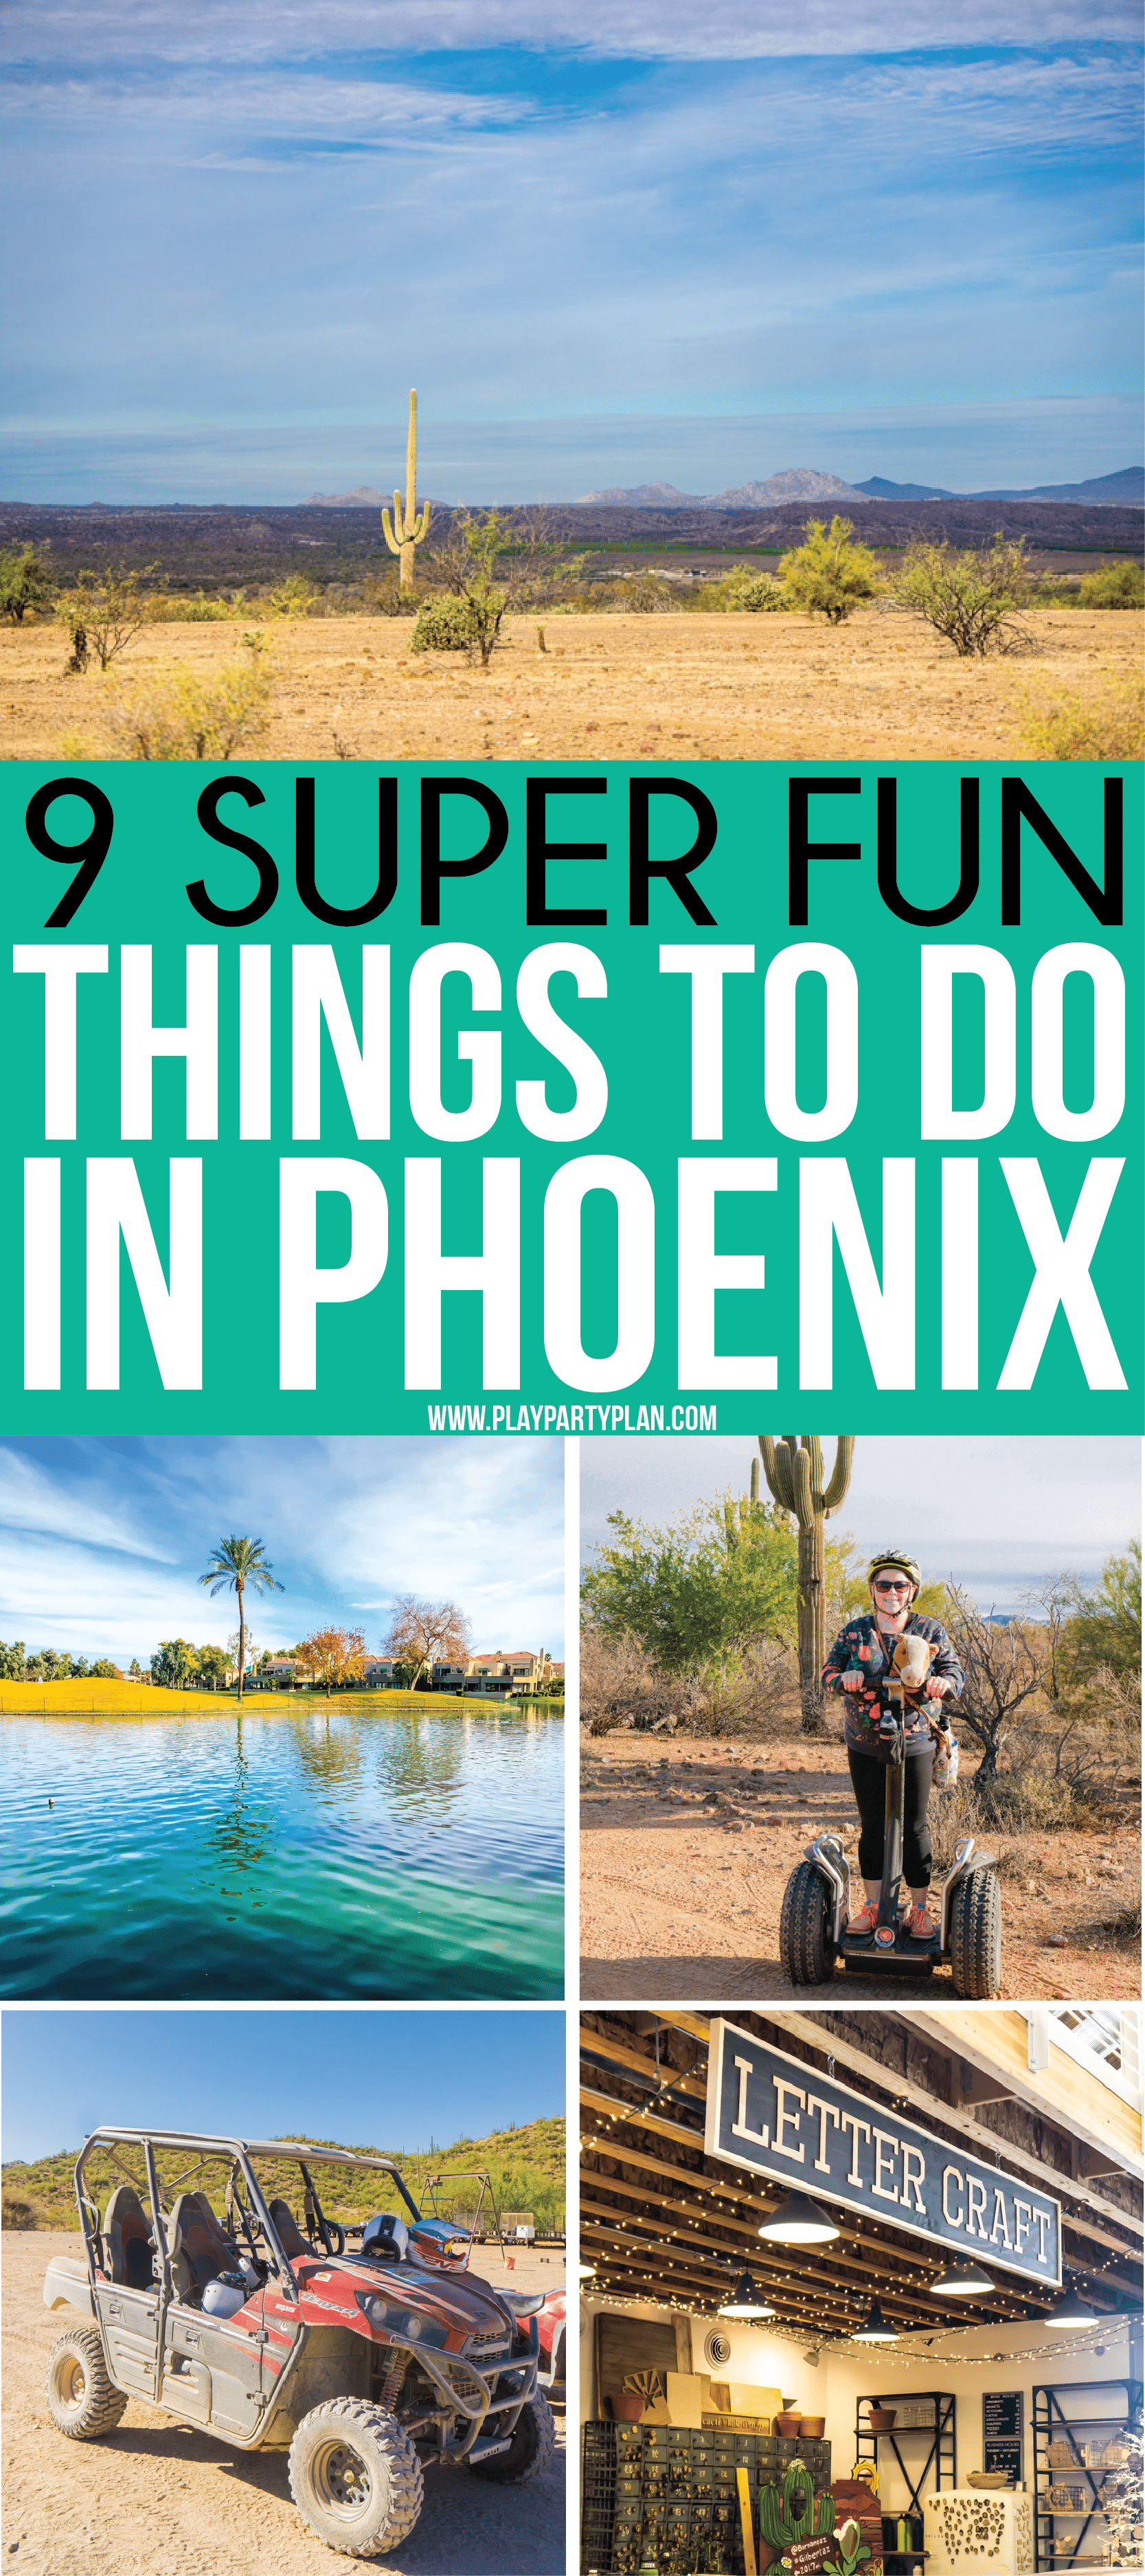 The best things to do in Phoenix Arizona whether you're living there already or just going on vacation! Great restaurants to try, downtown nightlife to experience, must-see attractions, and of course things to do with kids! The ultimate resource for someone looking for what to do in Phoenix!